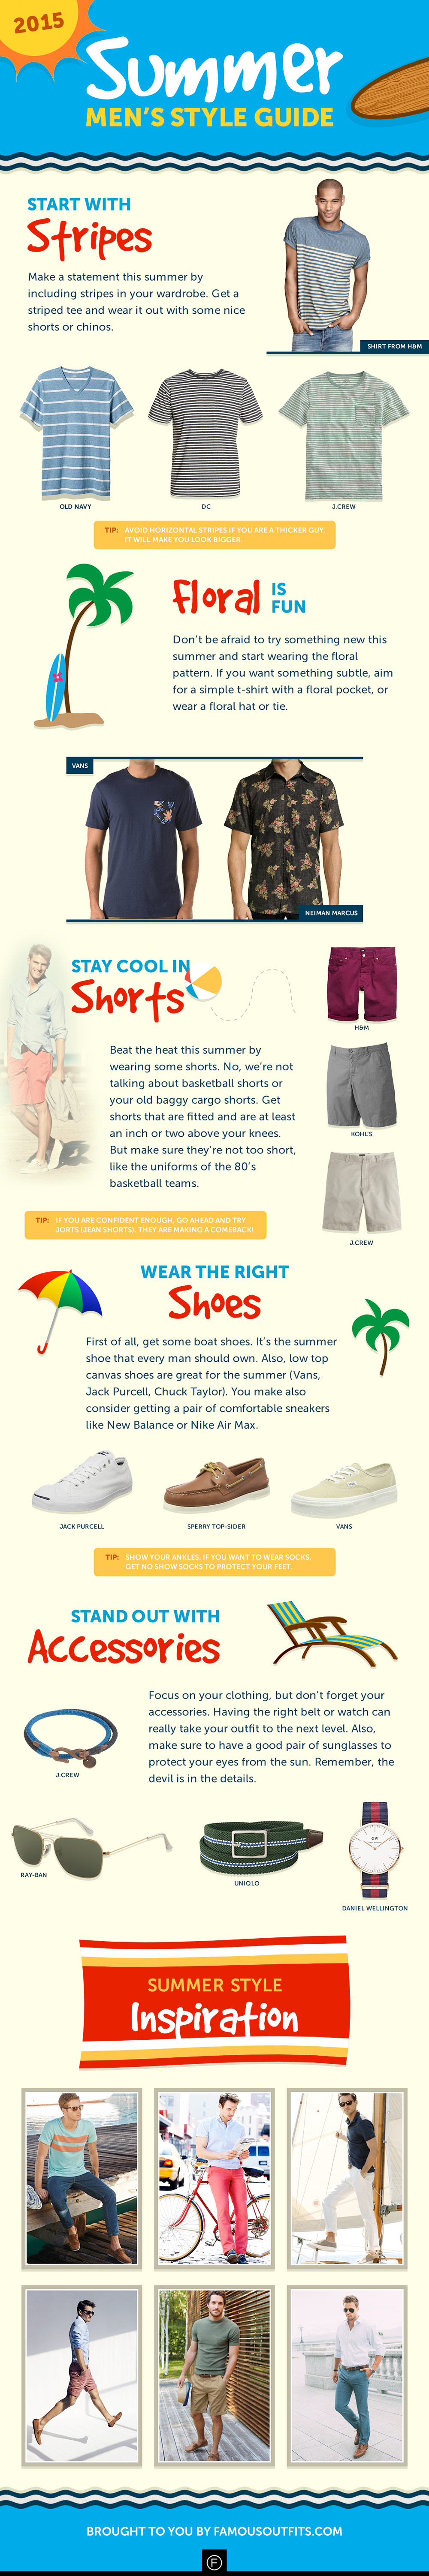 2015 Men's Summer Style Guide